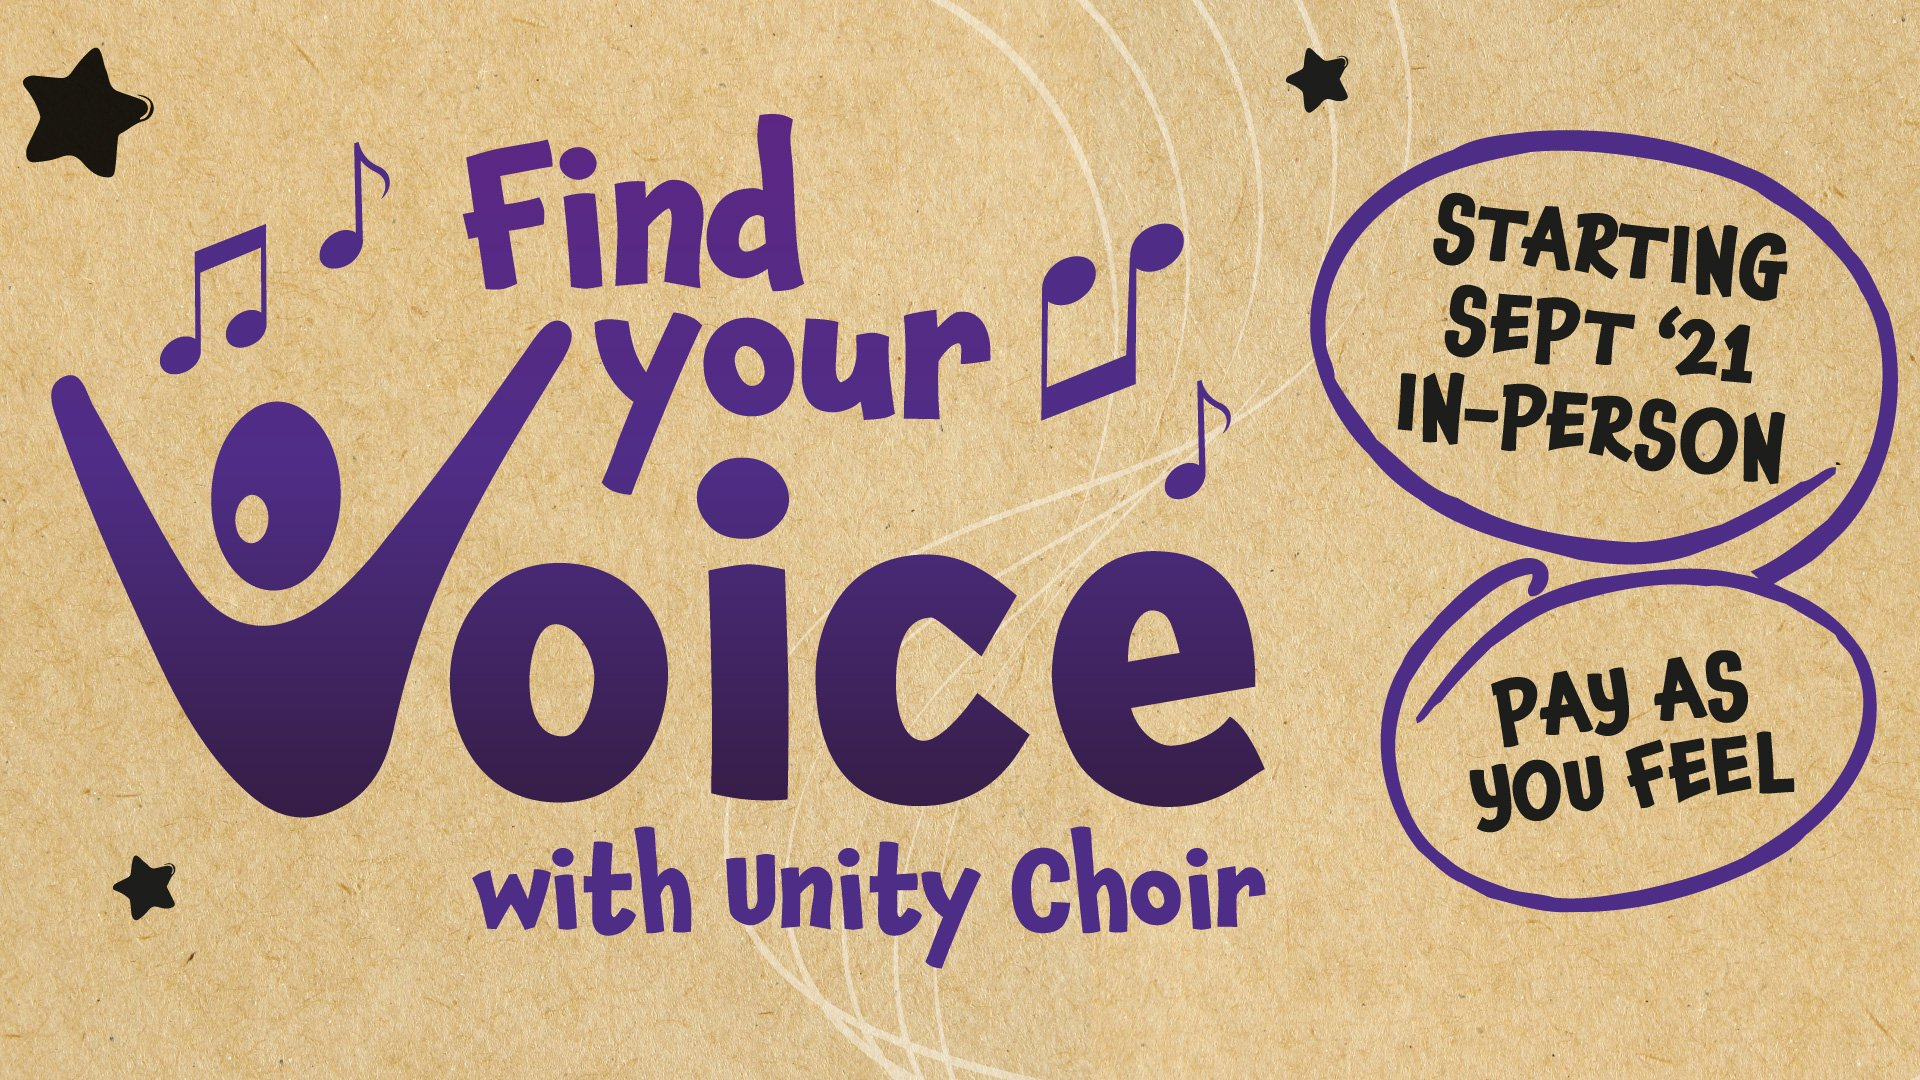 Find Your Voice with Unity Choir